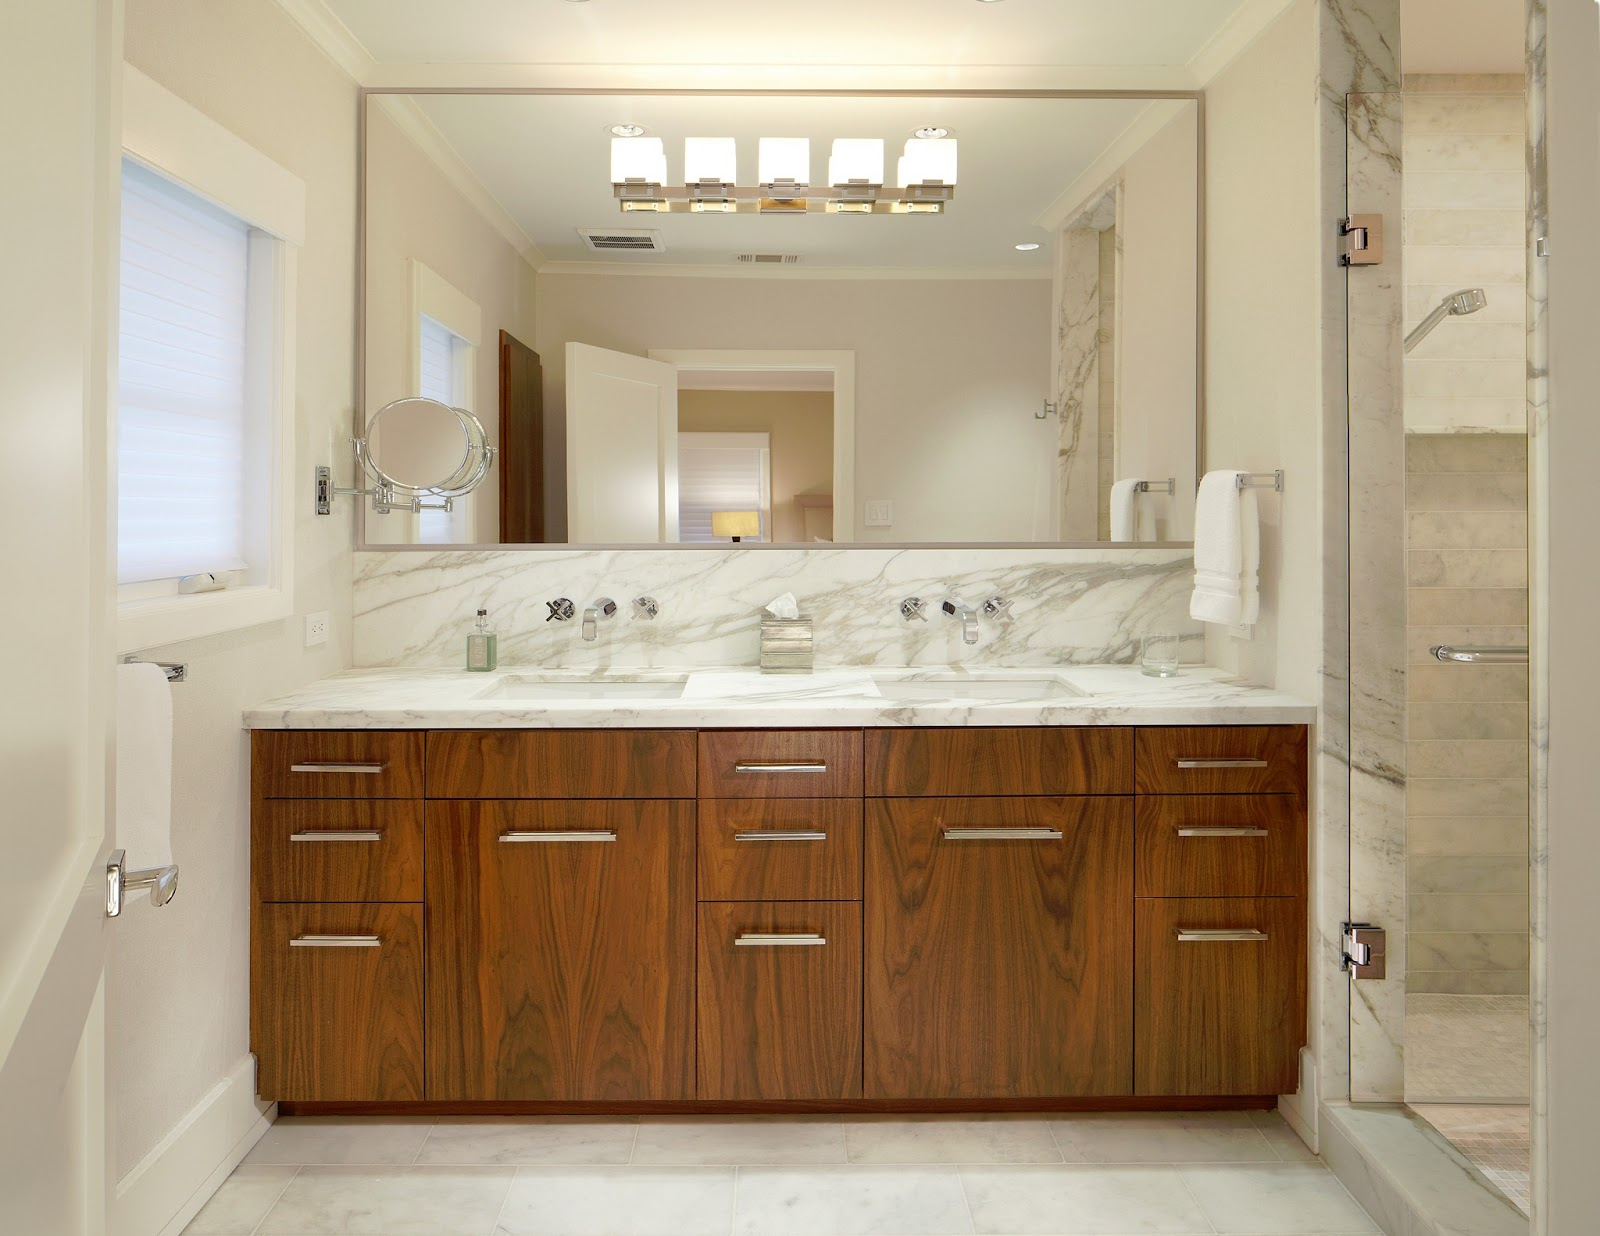 Agreeable Large White Mirrored Bathroom Cabinet Corner Ideas Intended For 2020 Wall Mirrors For Bathroom Vanities (View 7 of 20)